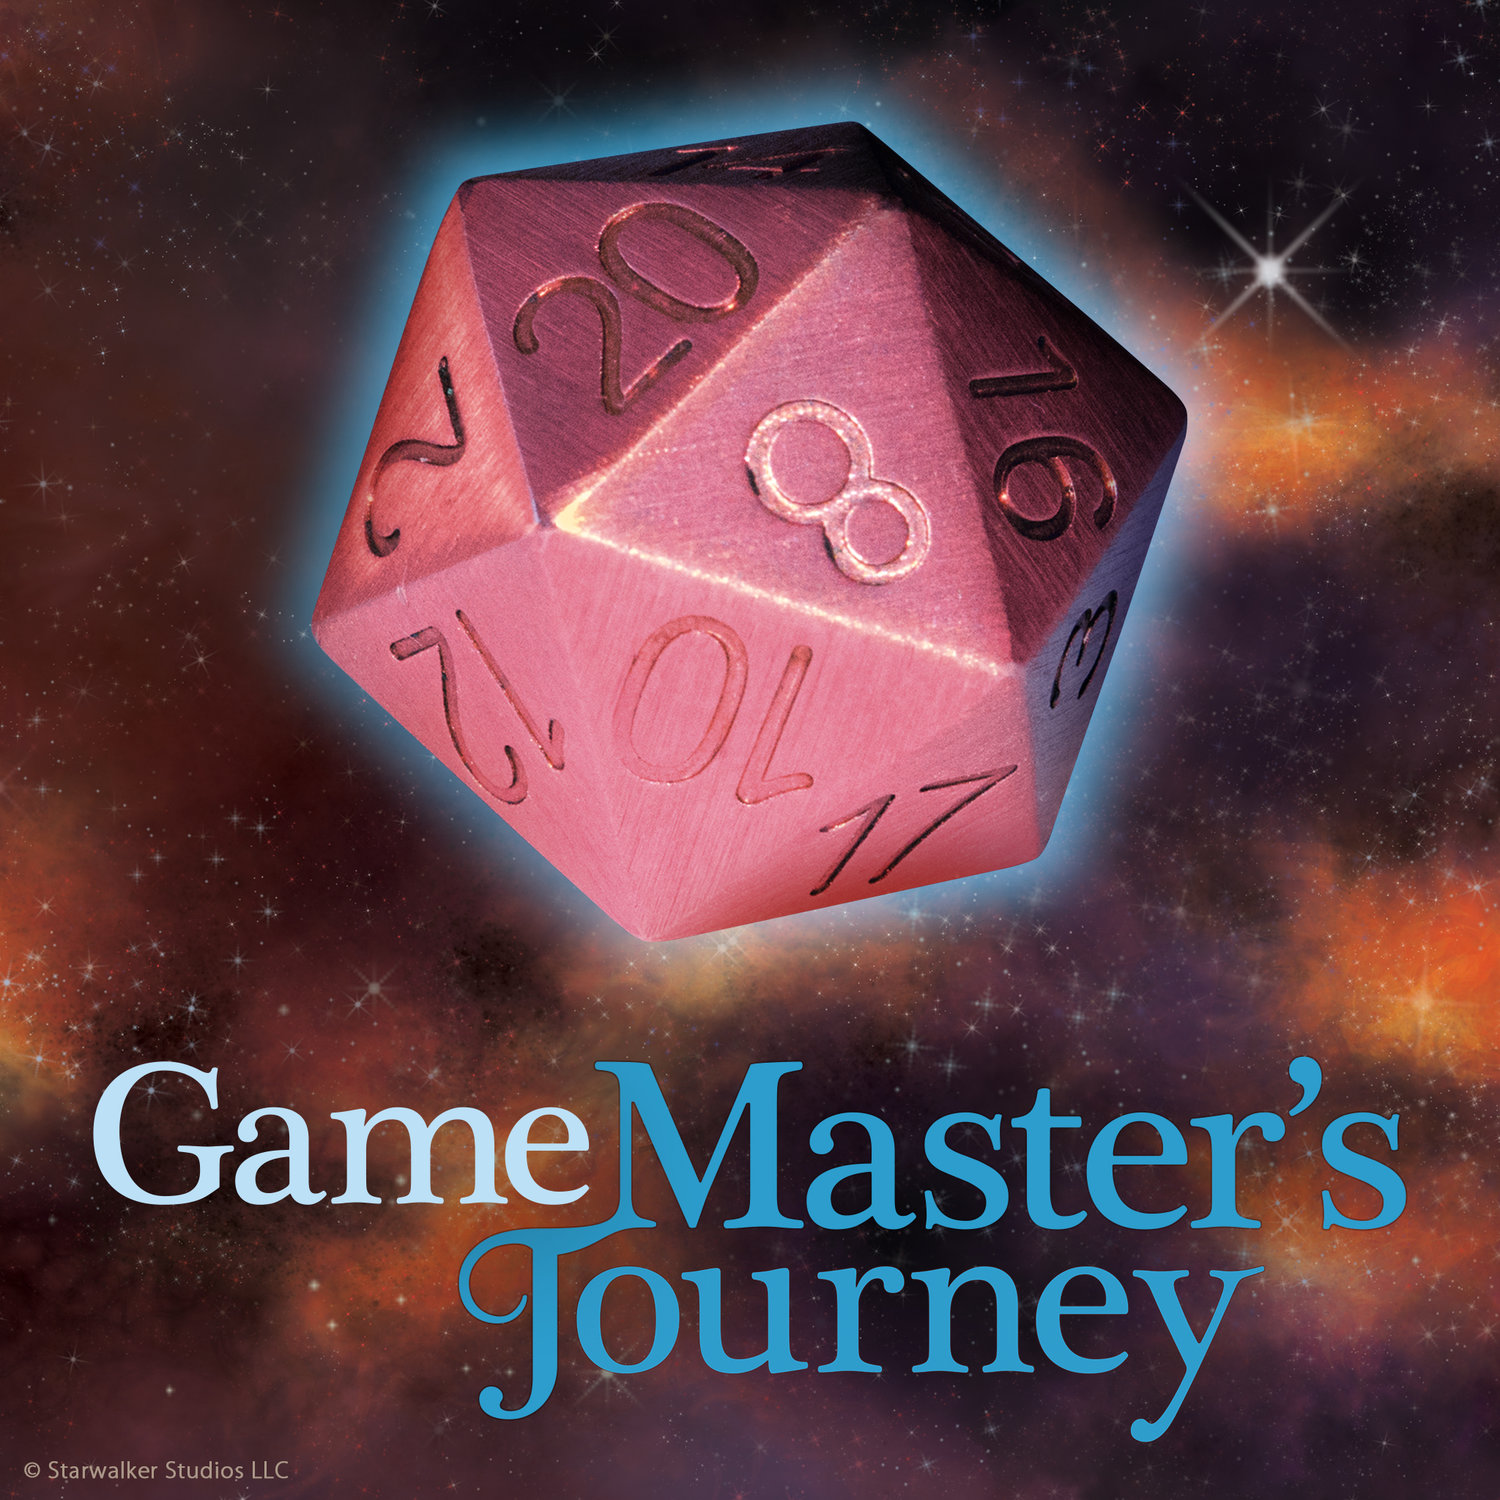 Game Master's Journey